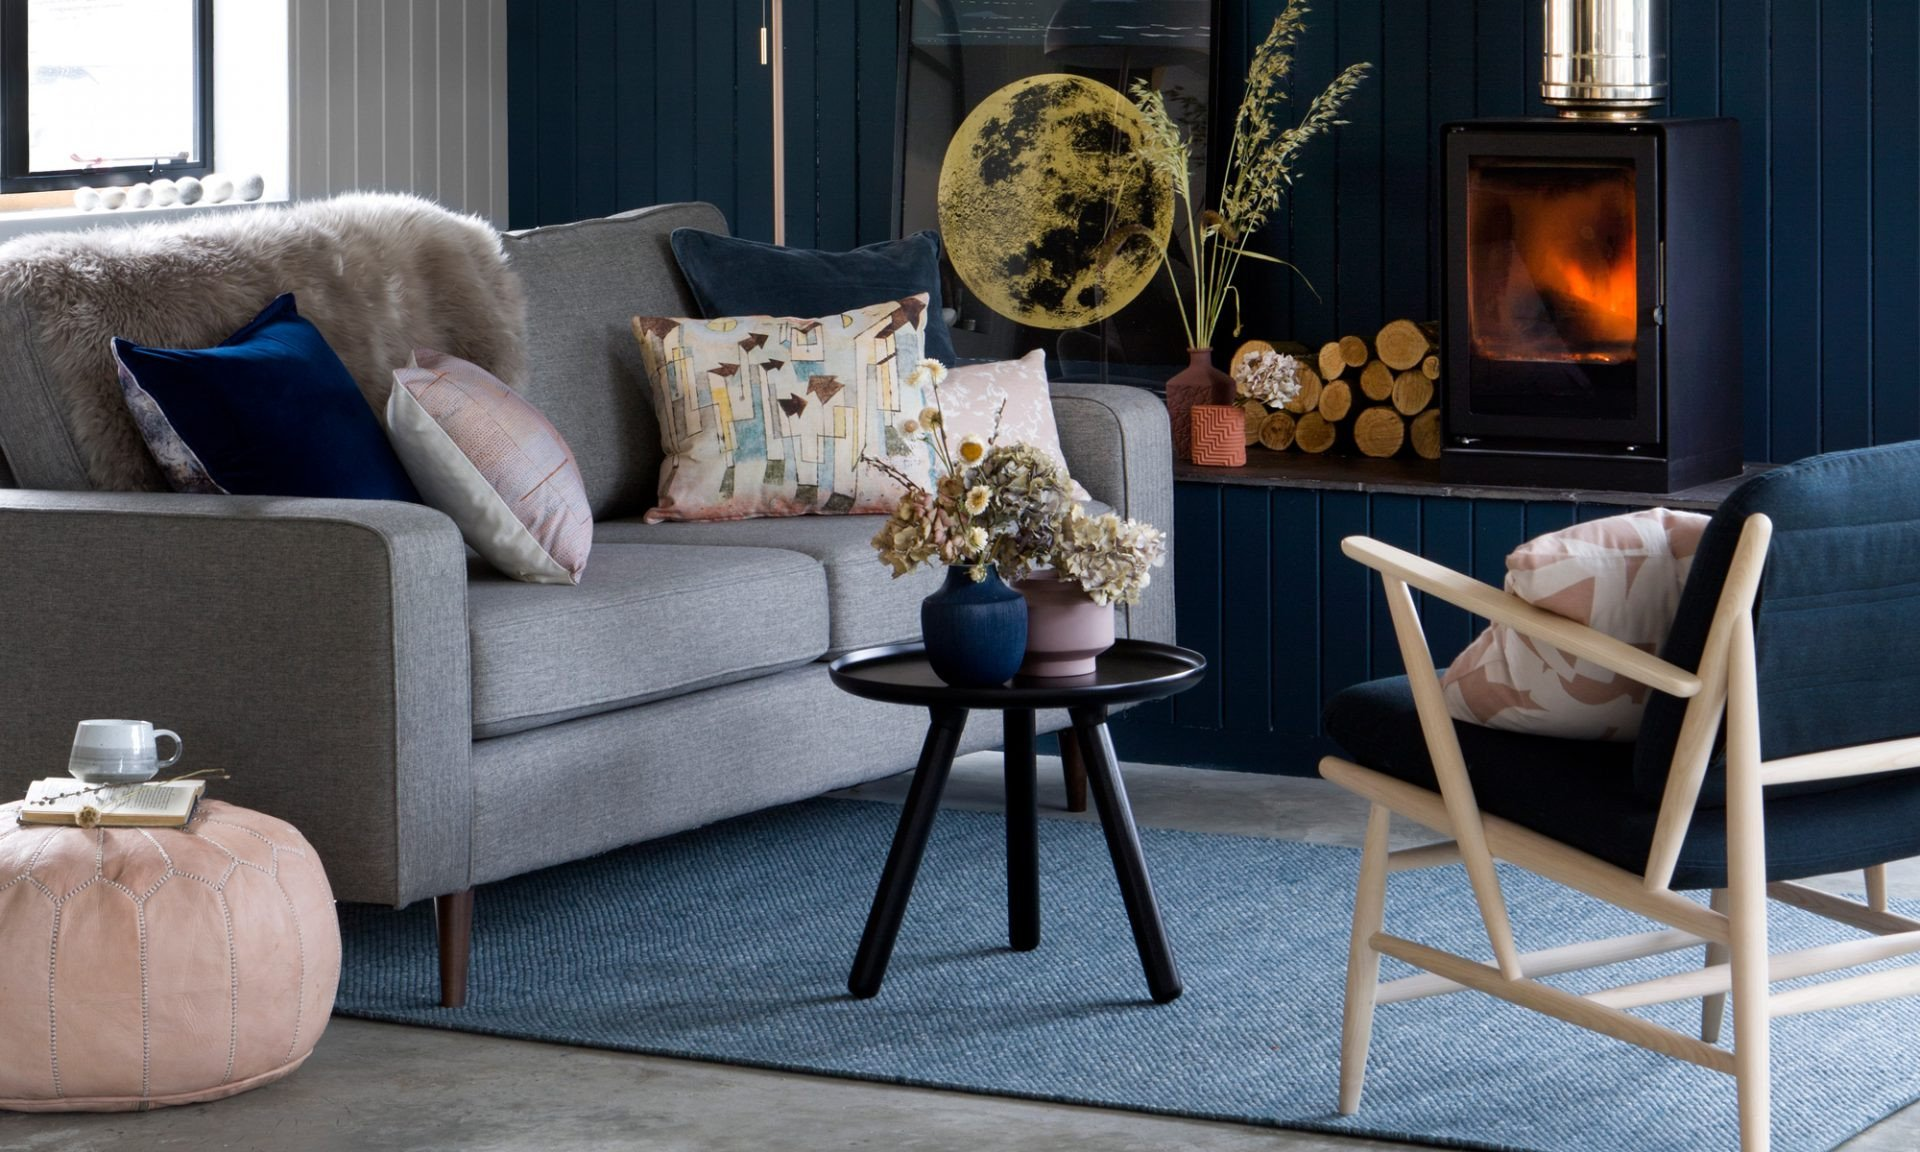 New Trends In Home Decor Lovely Home Decor Trends for Autumn Winter 2018 – We Predict the Key Looks for Interiors